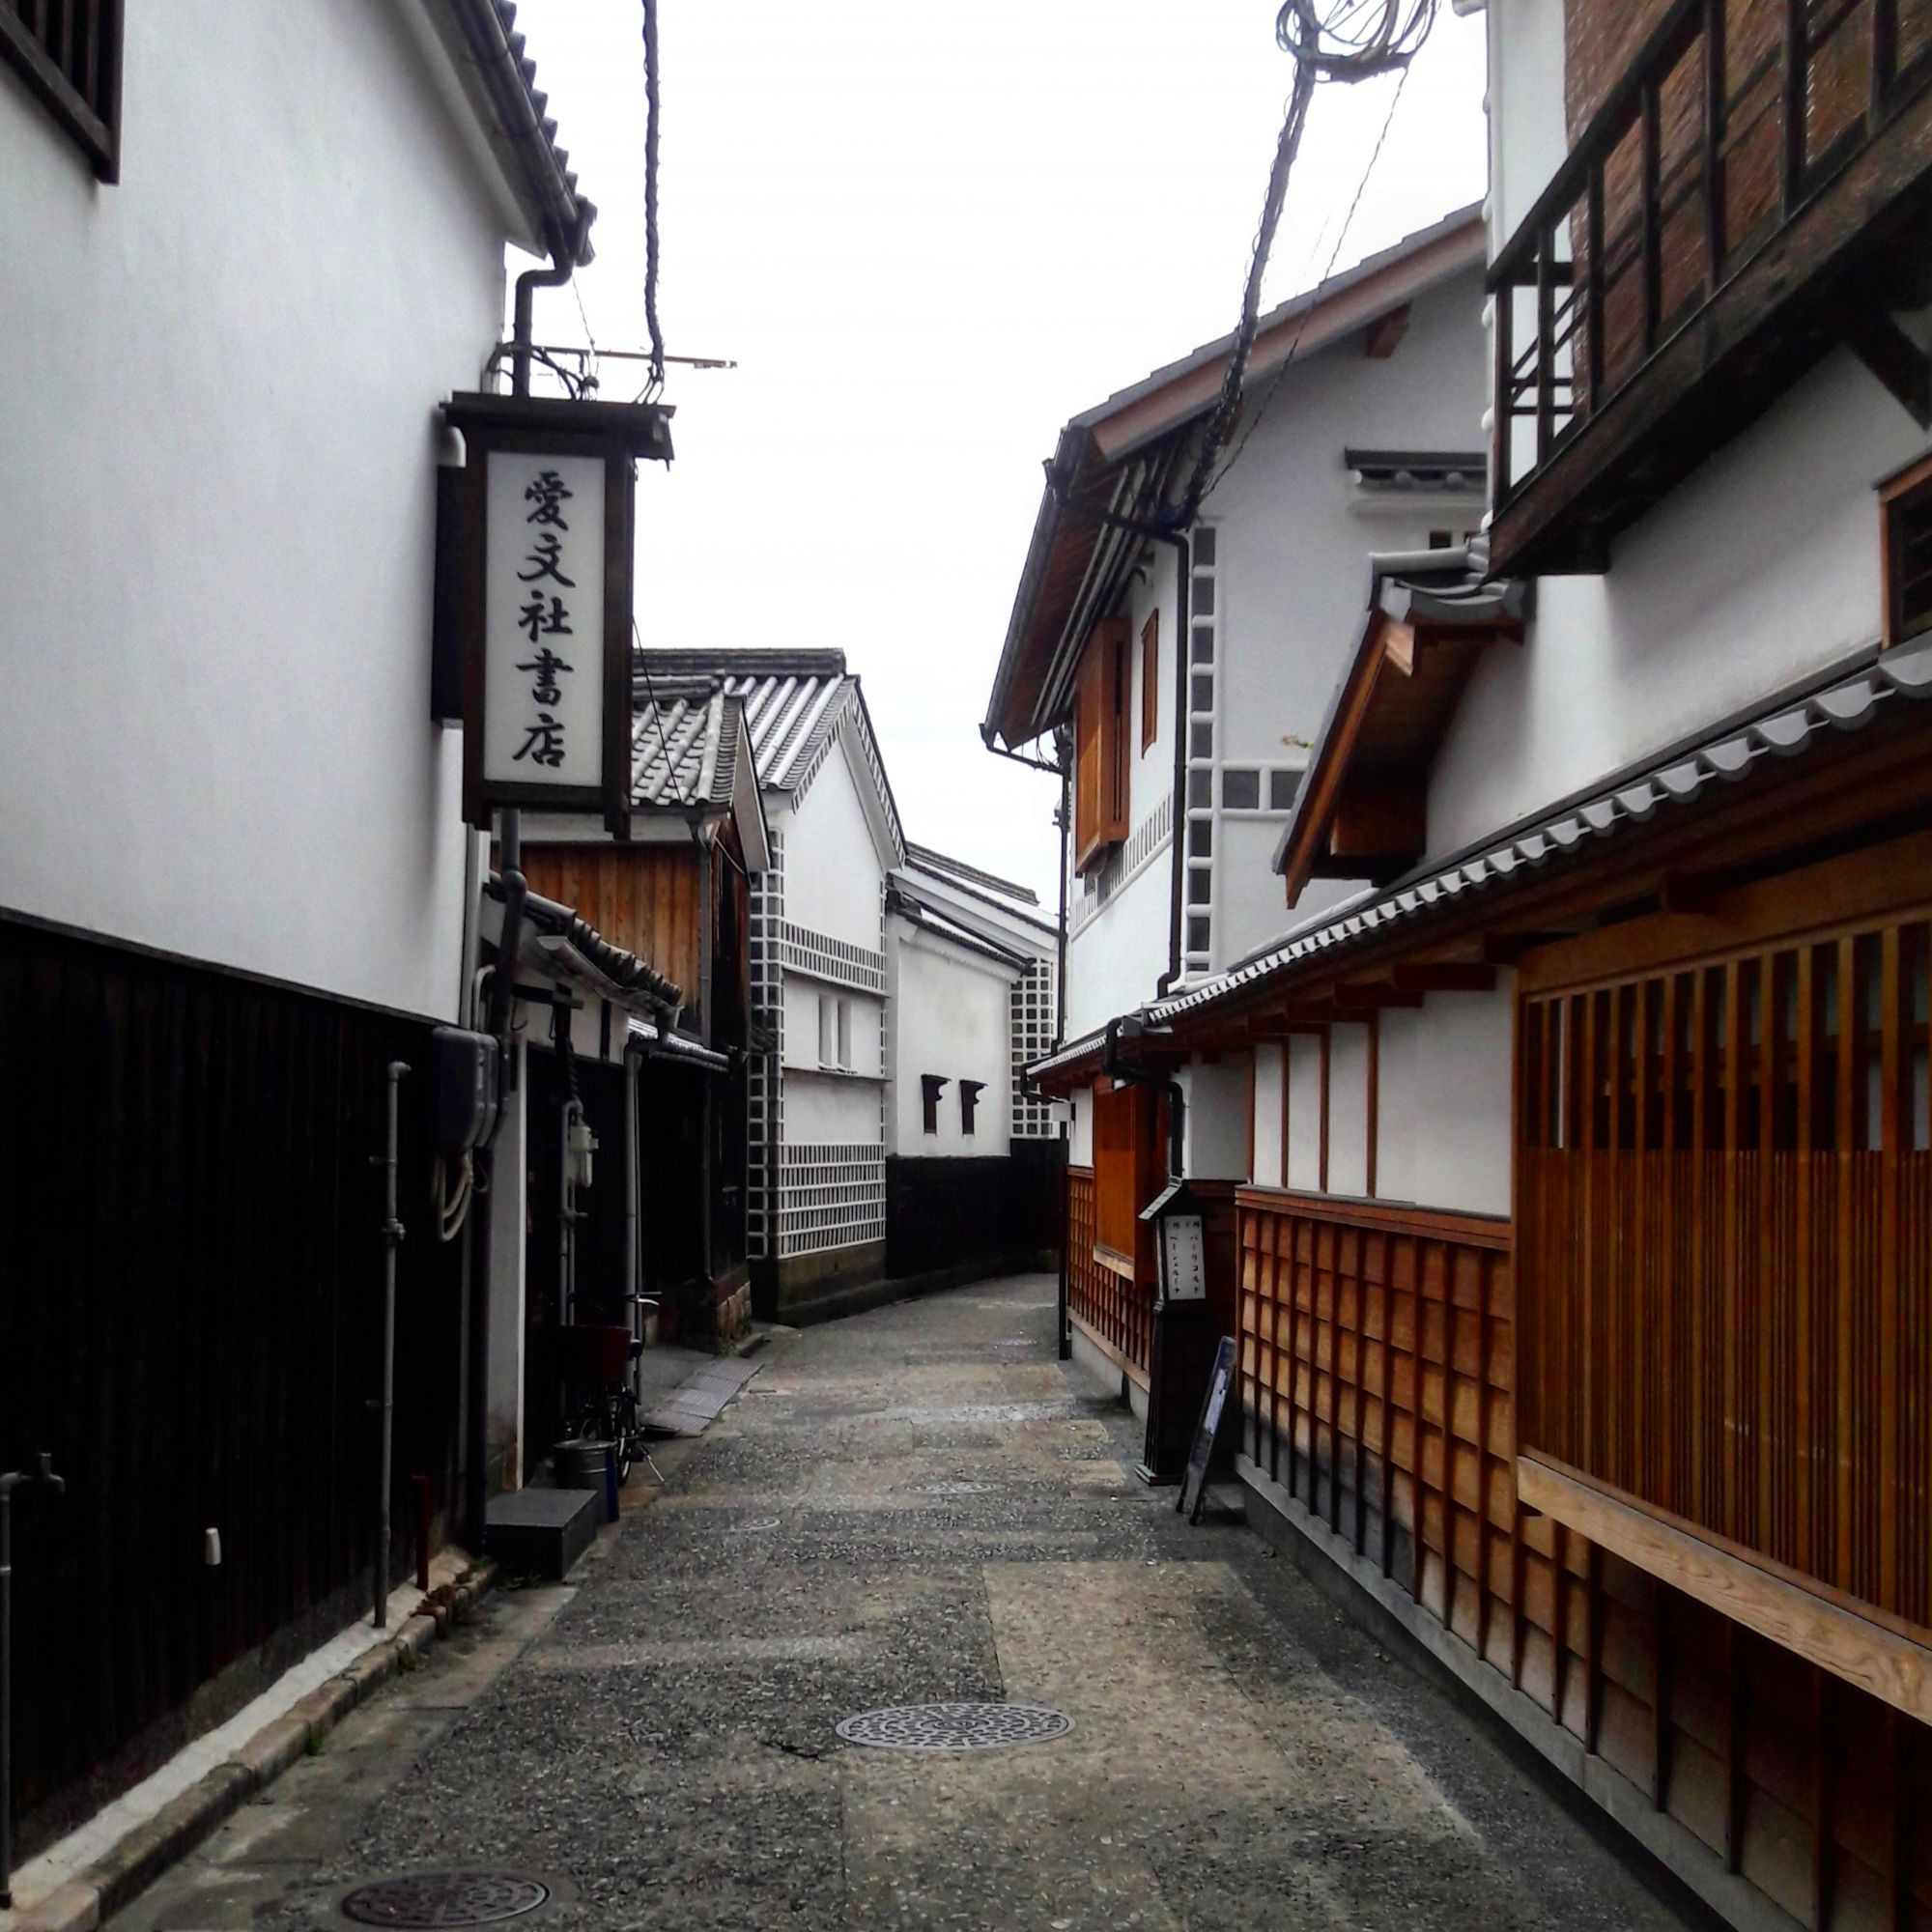 Japan Giving Away Abandoned Houses For Free To Lure New Residents